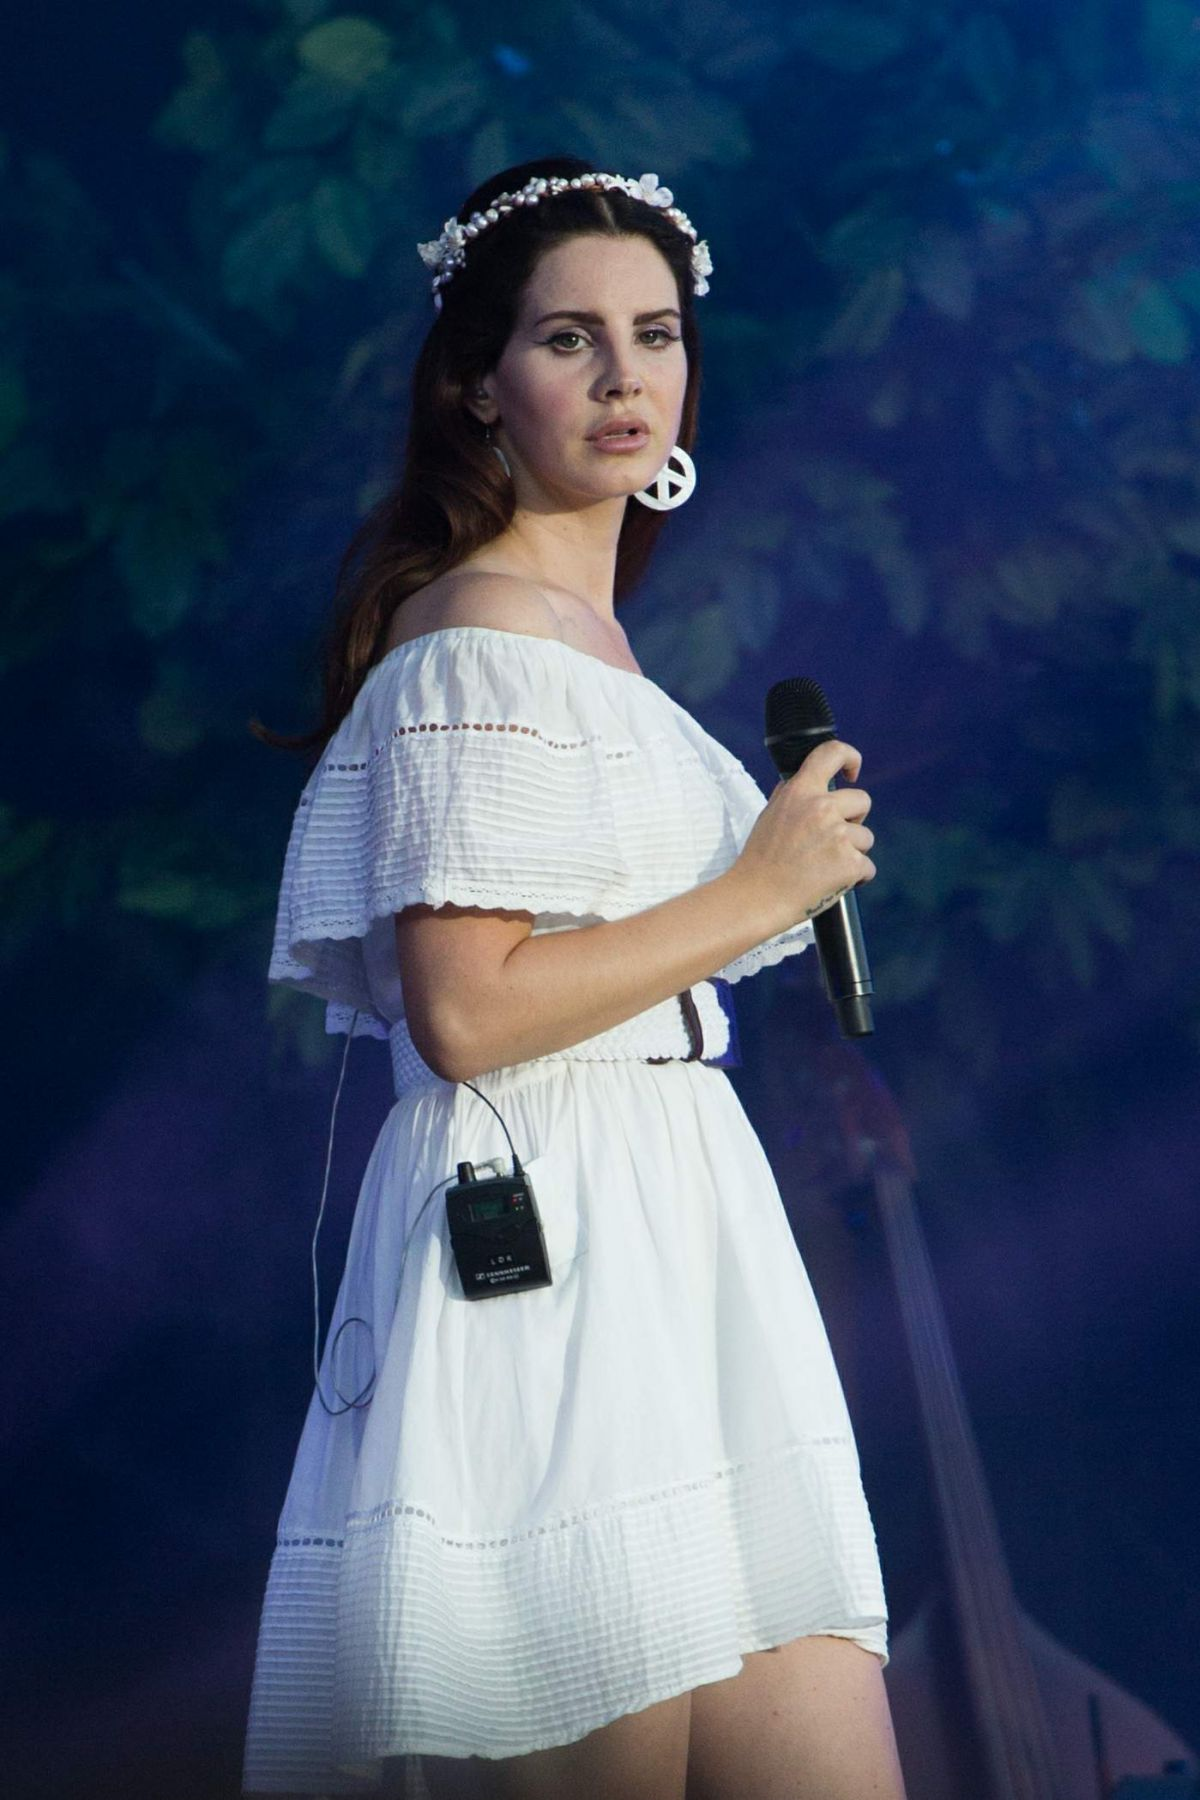 lana-del-rey-performs-live-at-les-vieill